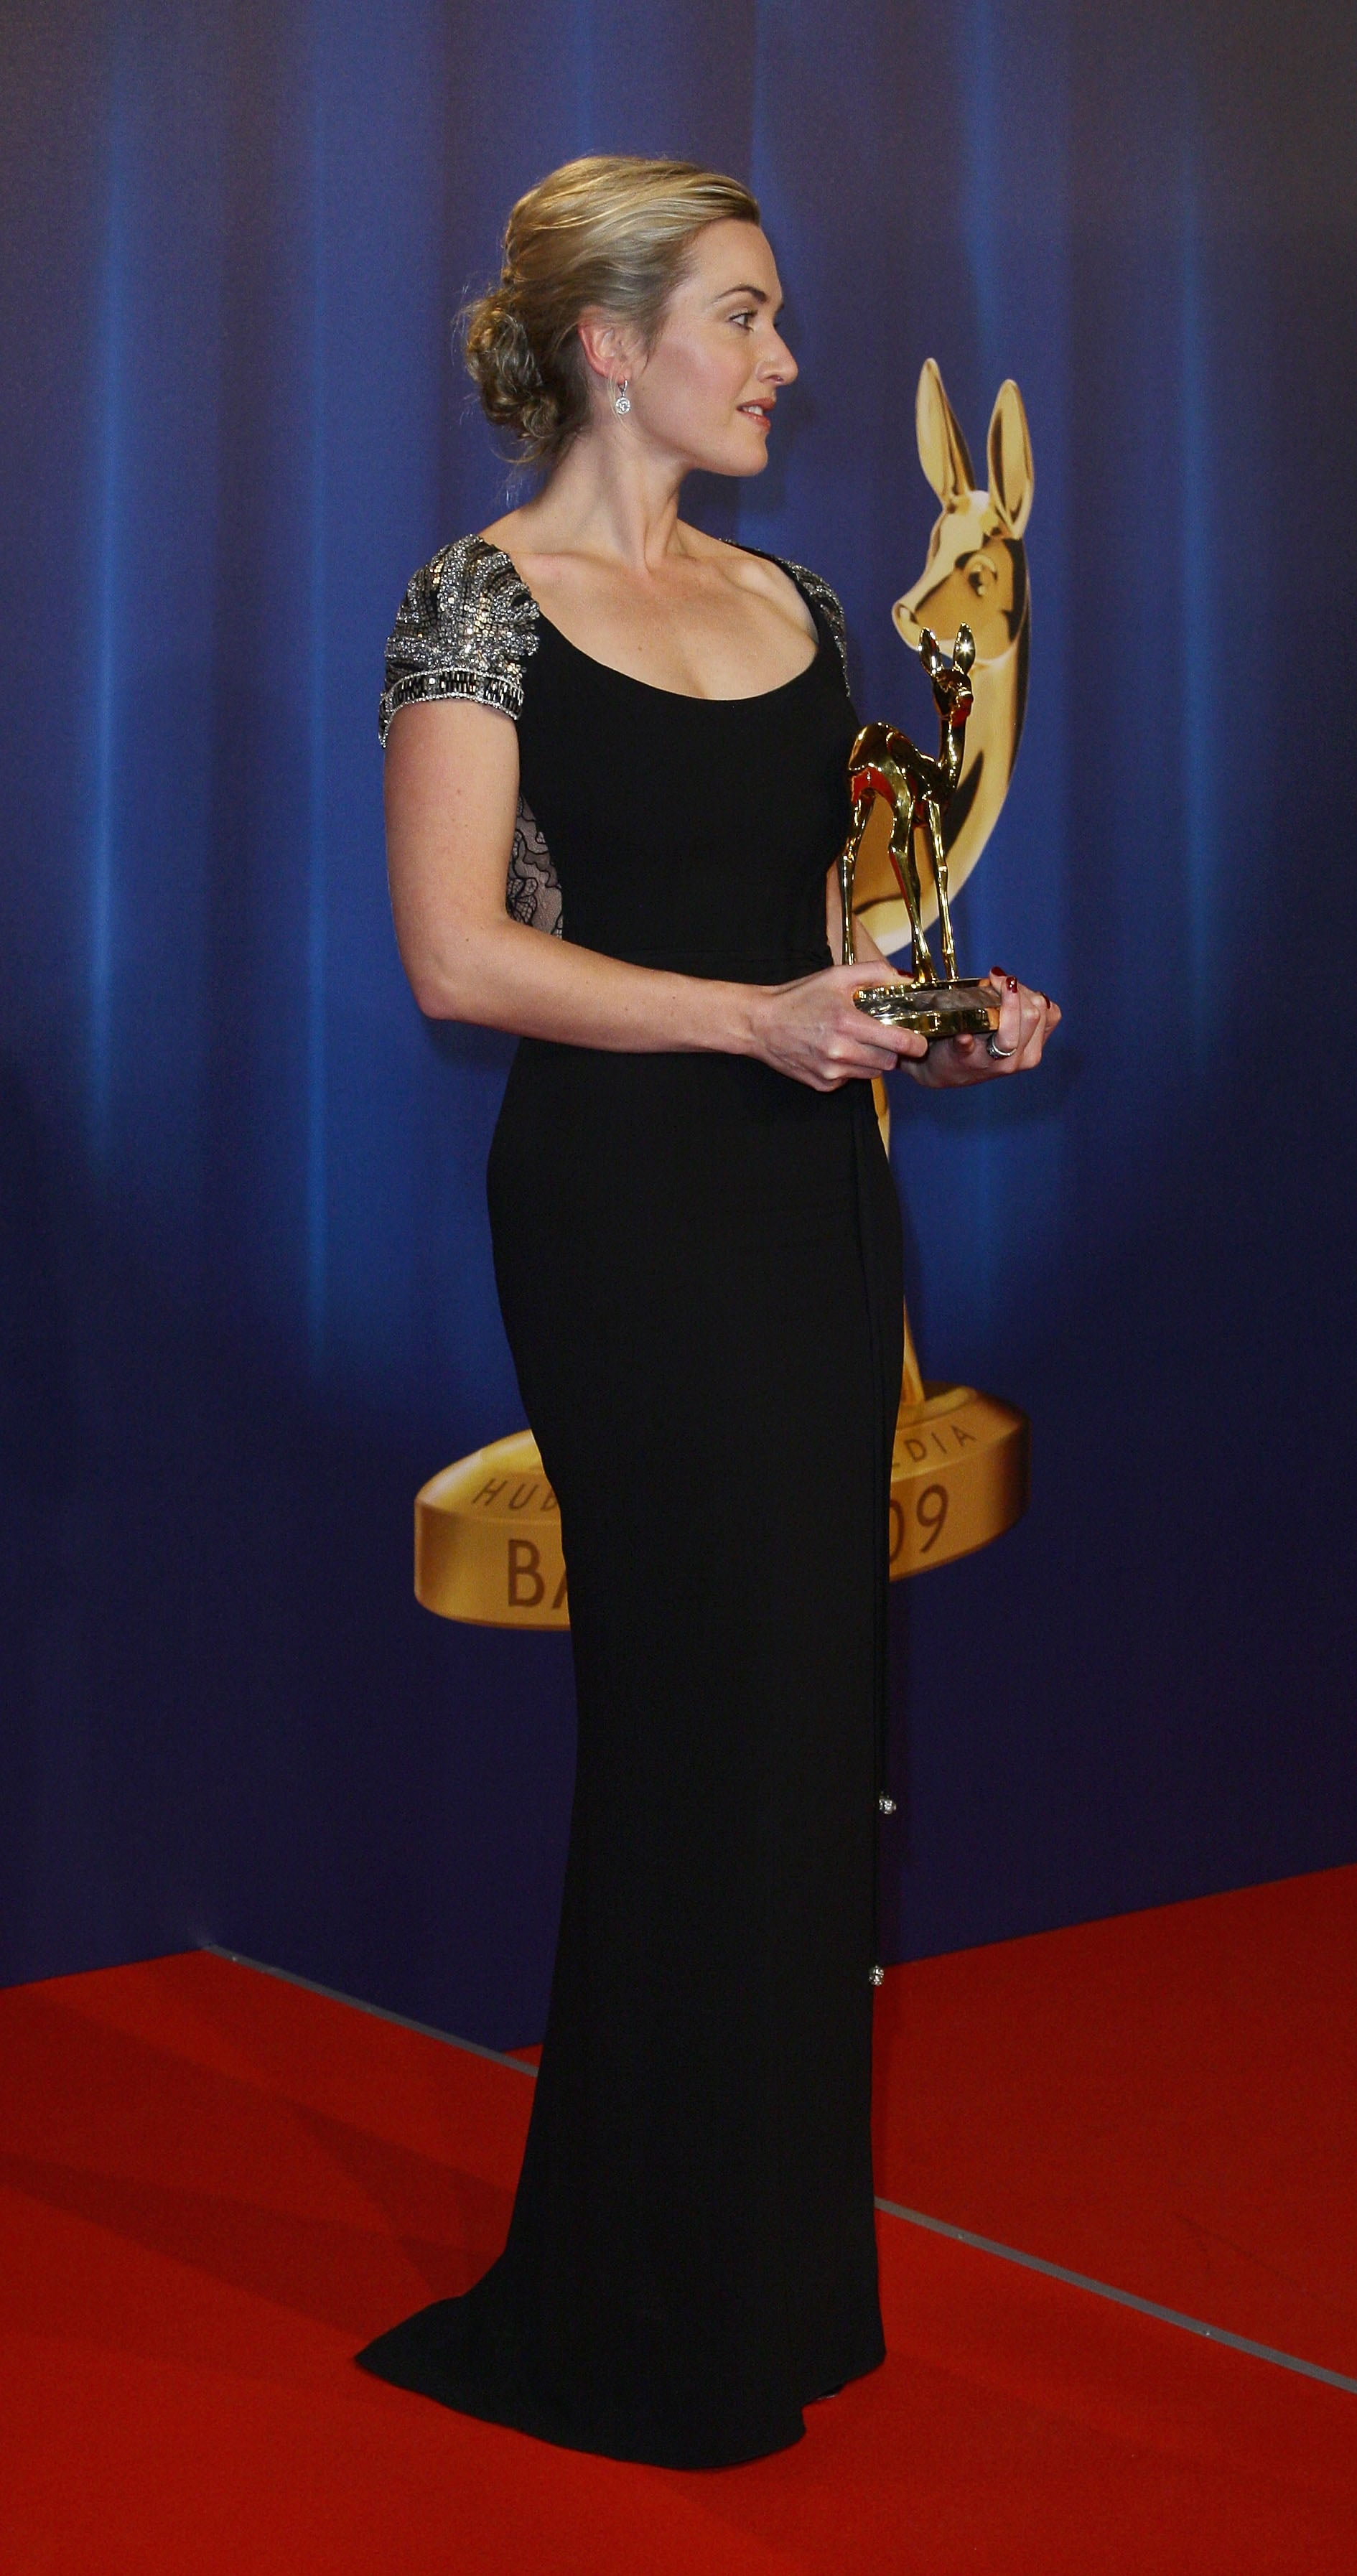 Photos From The 2009 Bambi Awards Where Kate Winslet Won